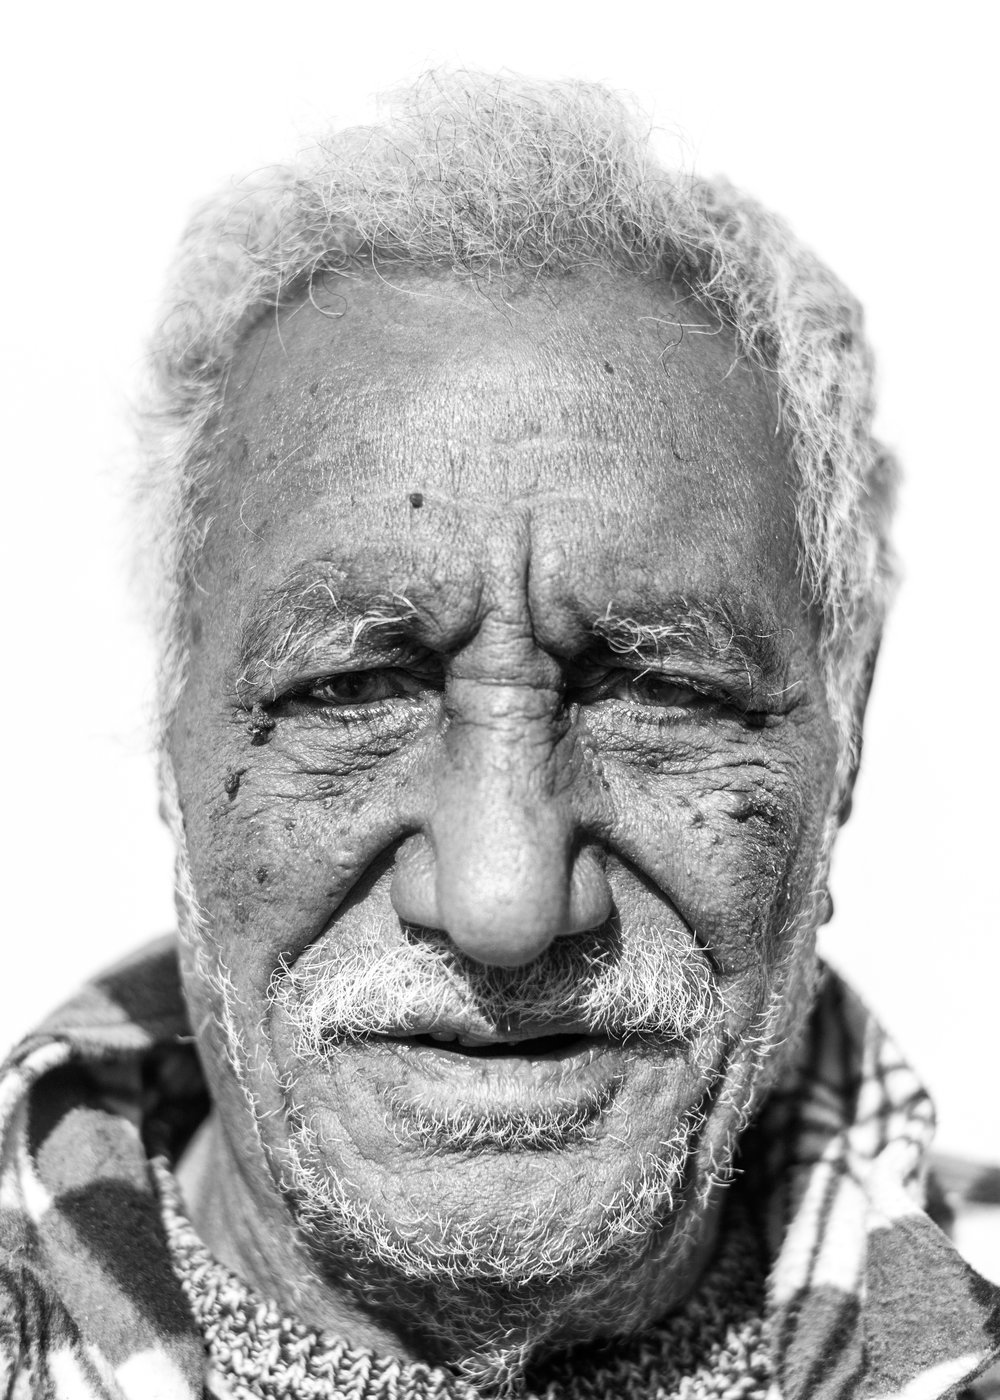 Man from Sudan, Brighton